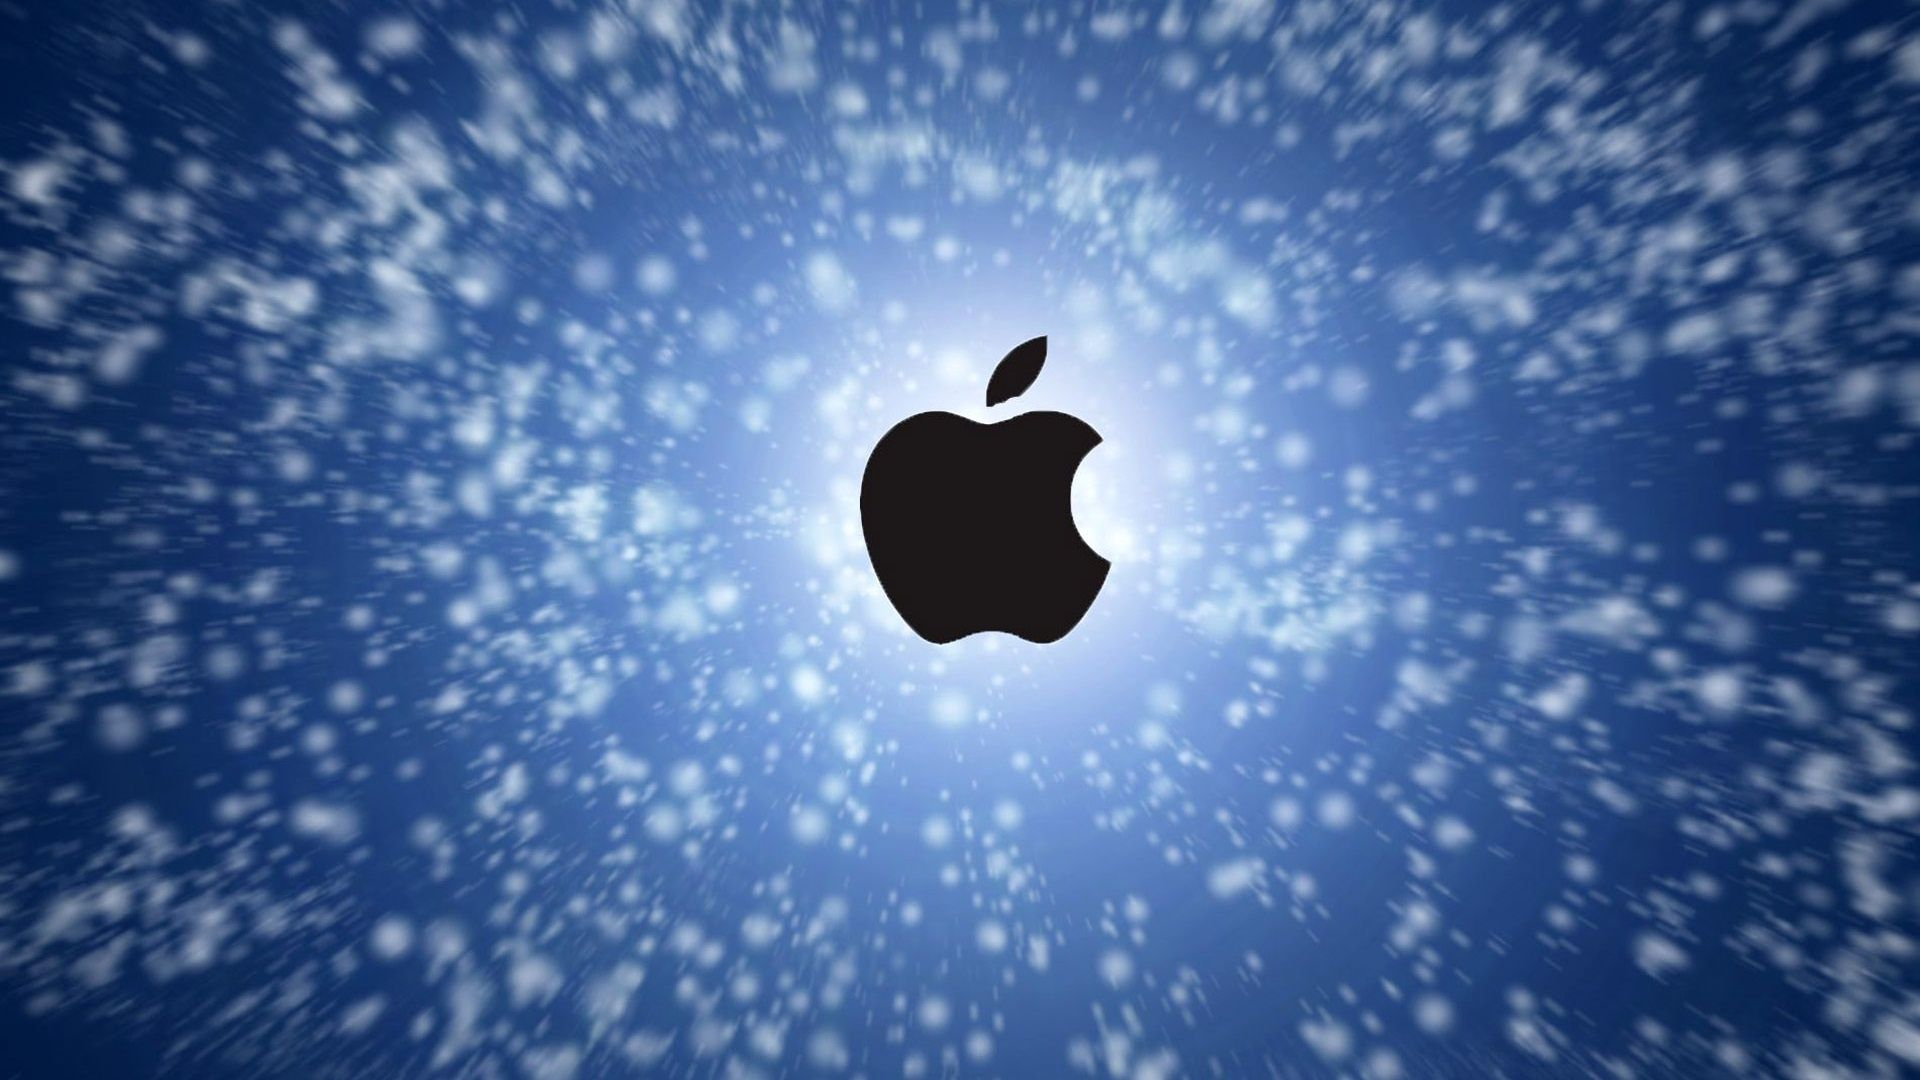 Photo Of Apple Logo Wallpaper For Iphone